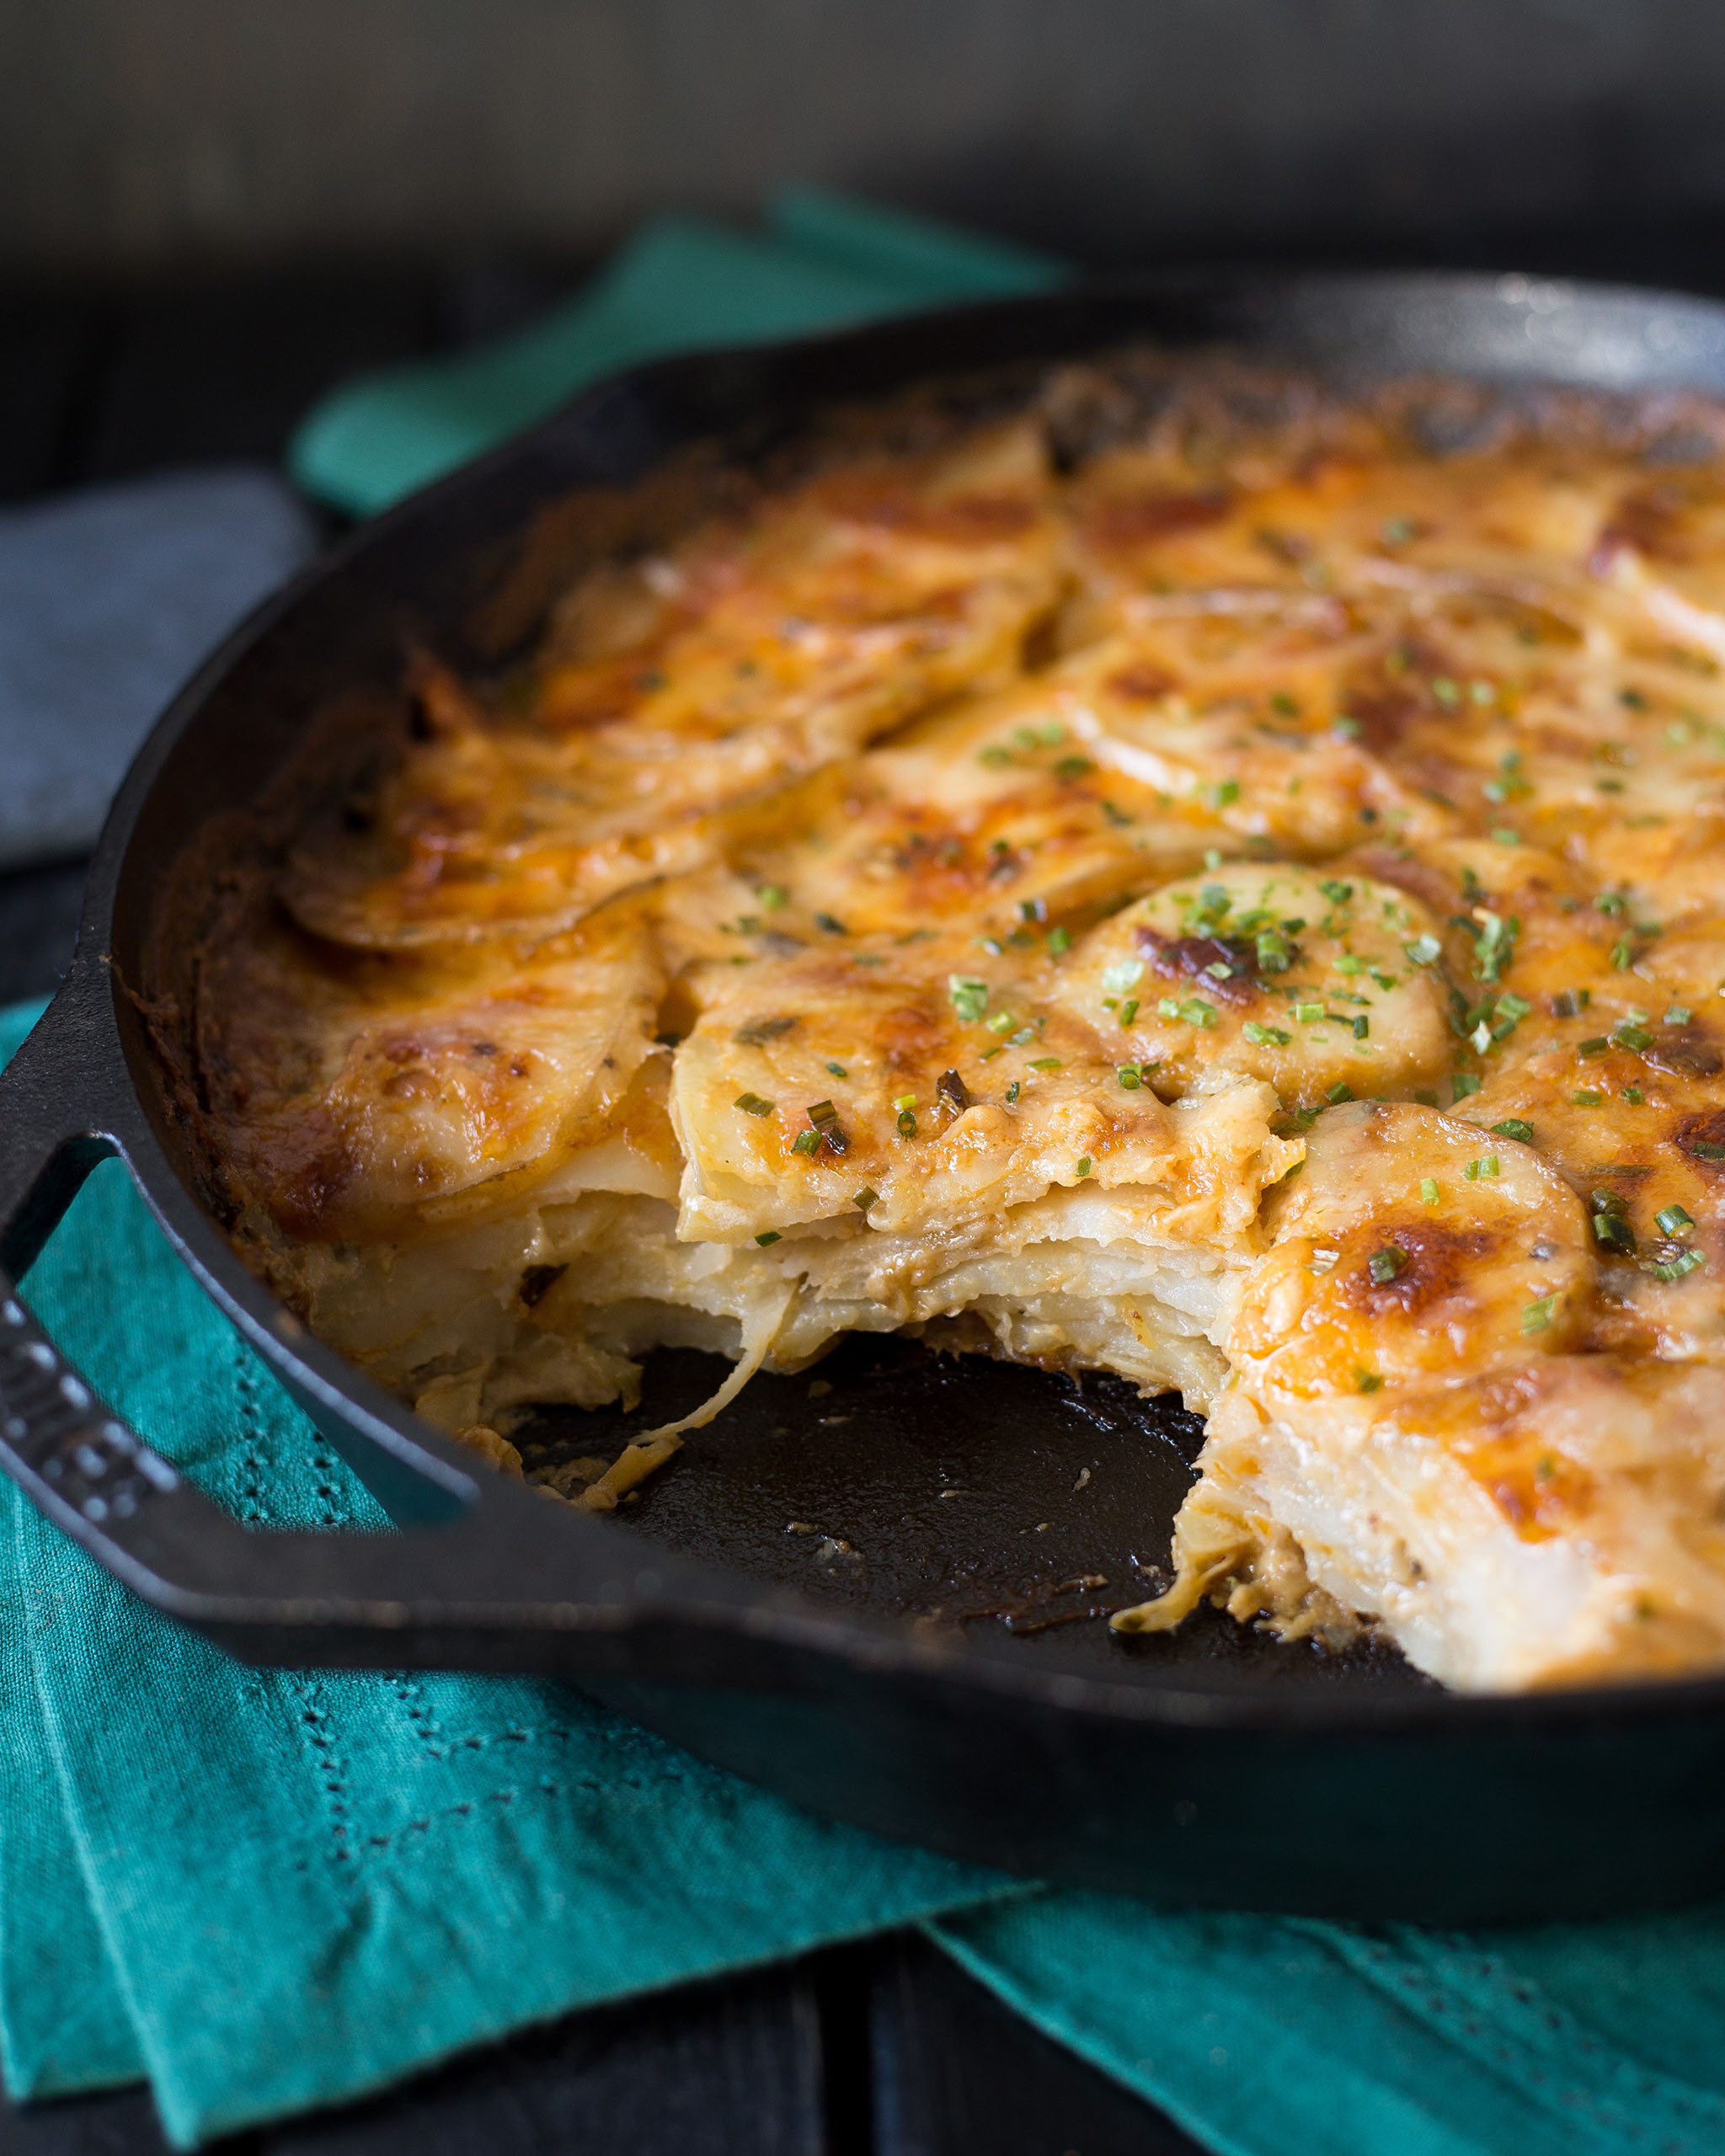 A photo of a completed pan of cheesy scalloped potatoes